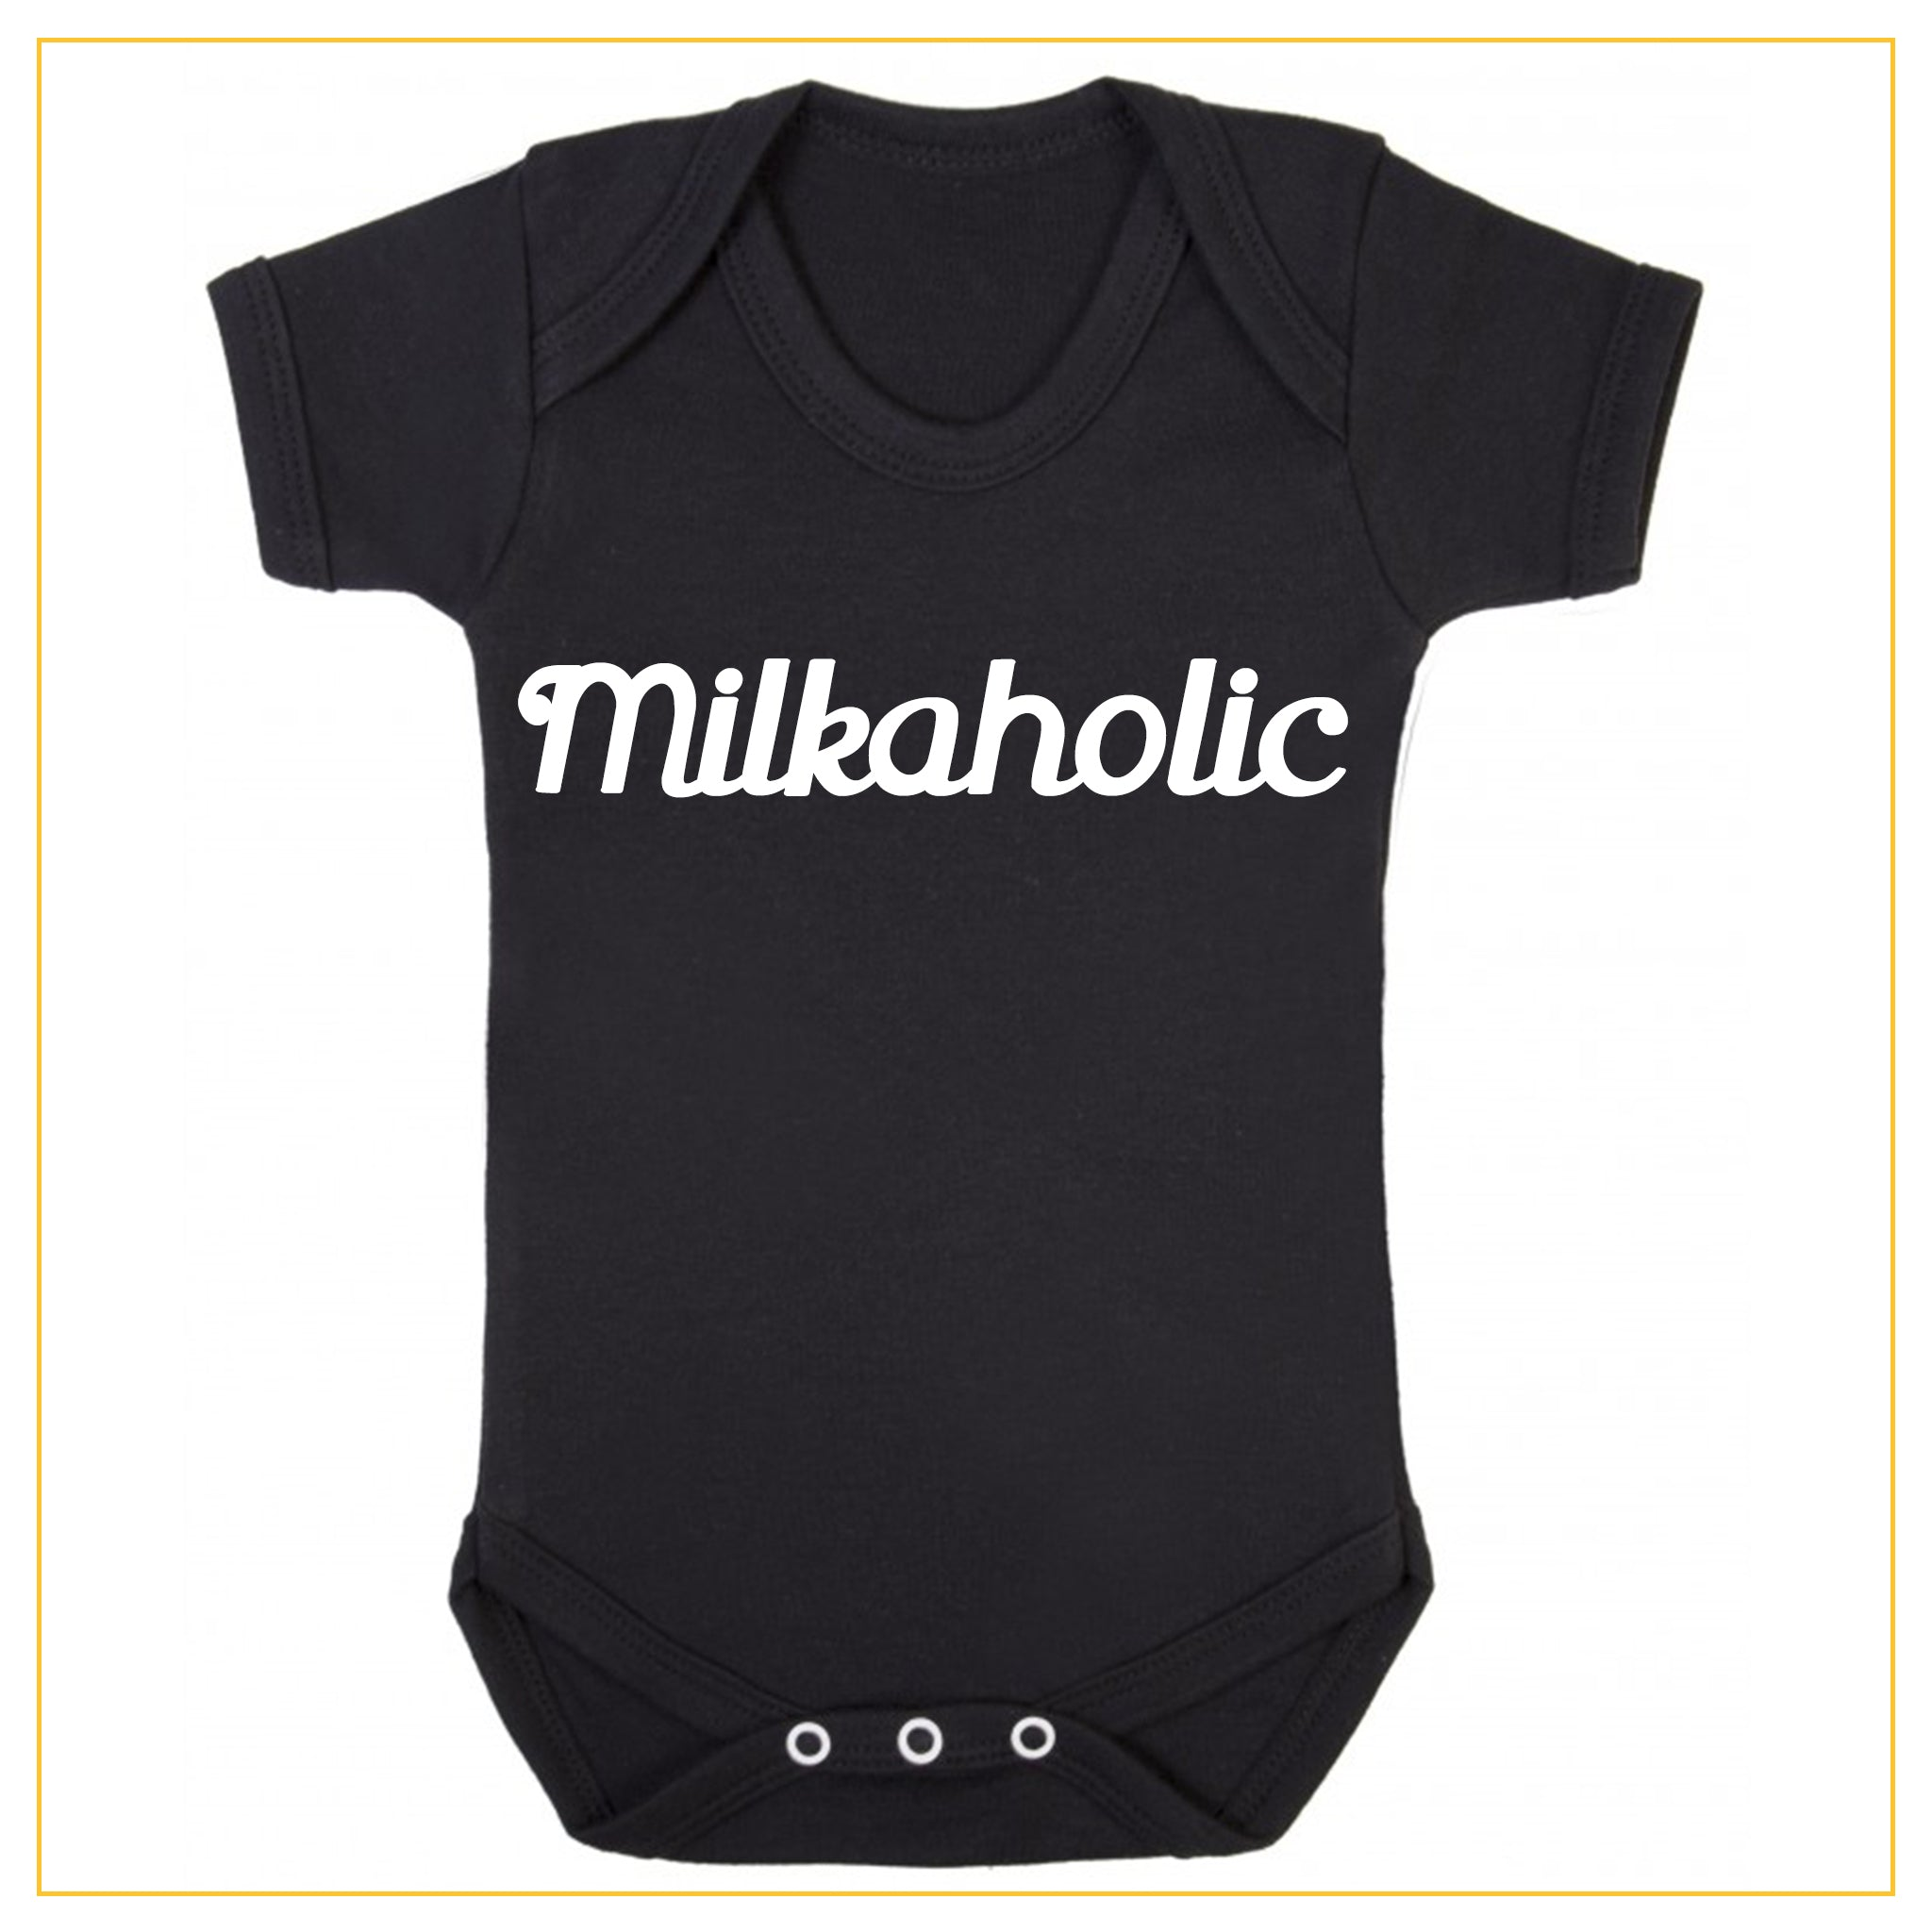 milkaholic novelty baby onesie in black